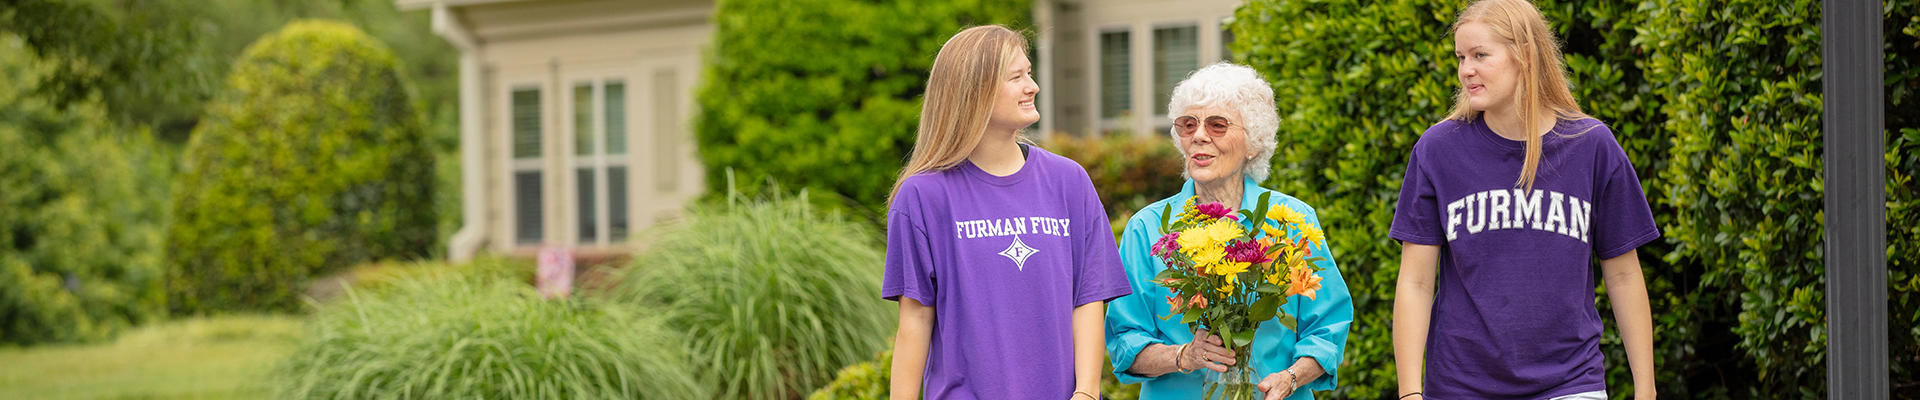 Personal Care The Woodlands at Furman